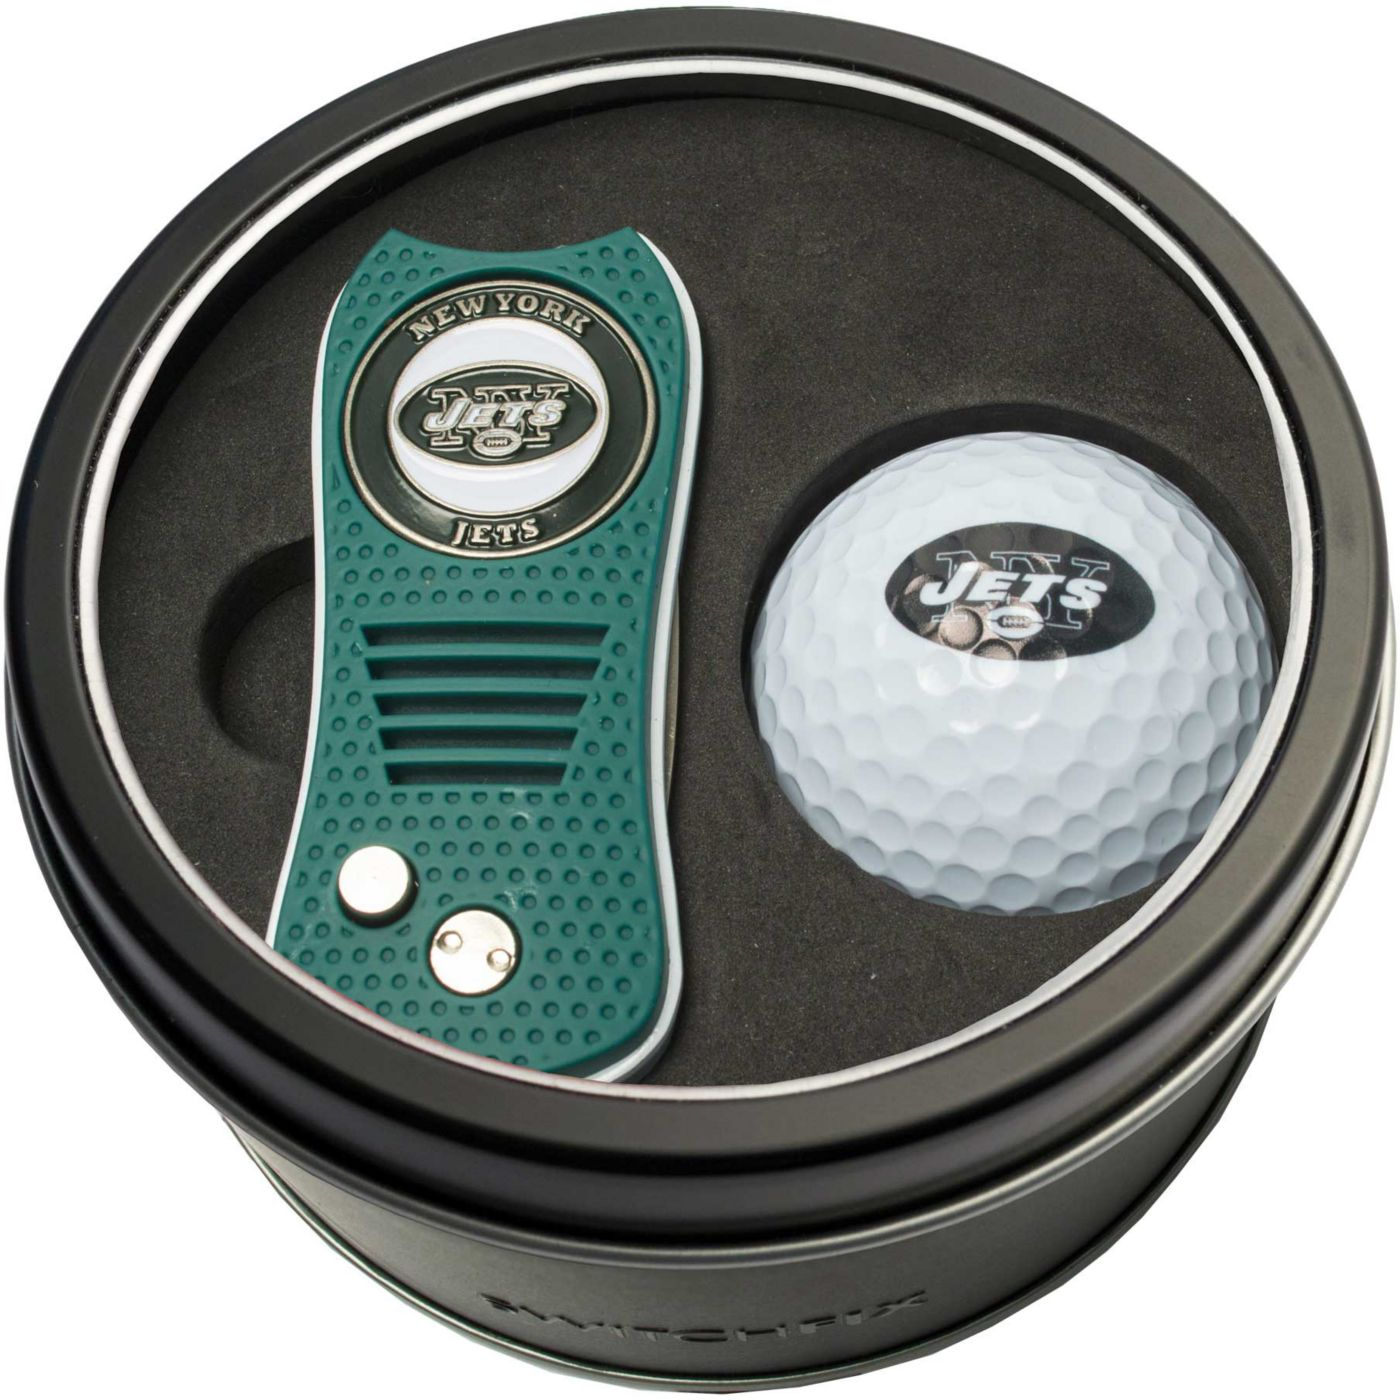 Team Golf New York Jets Switchfix Divot Tool and Golf Ball Set